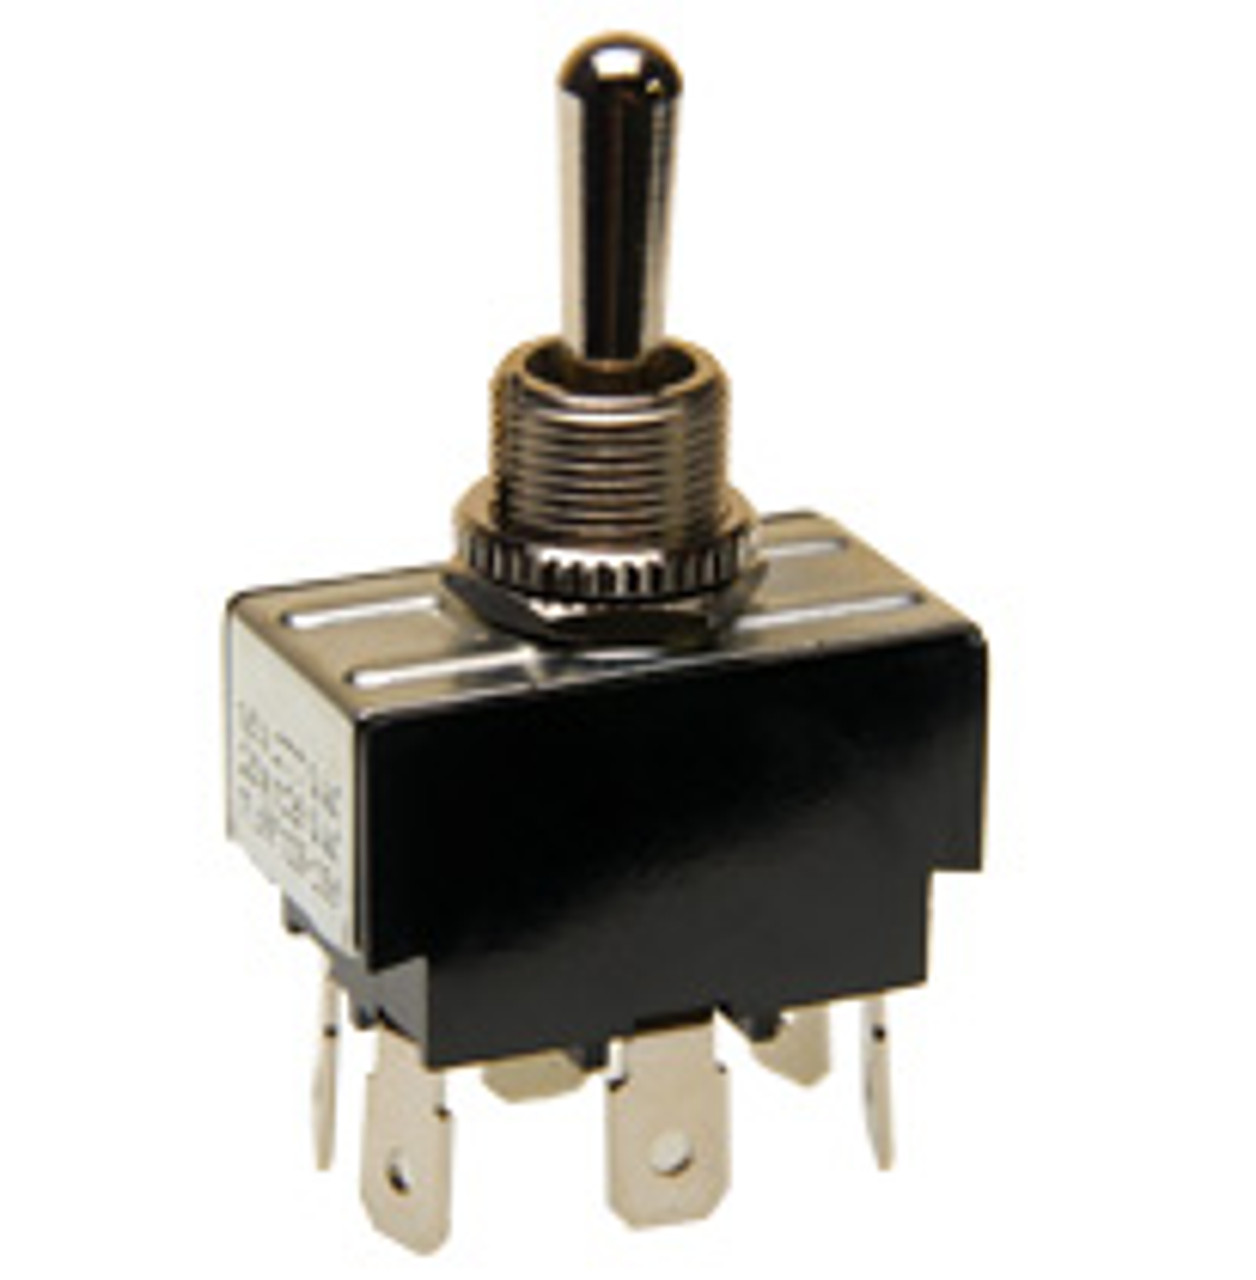 hight resolution of momentary toggle switch spring return to center off position way of wiring up a 3 position 6 pole center off switch aka a